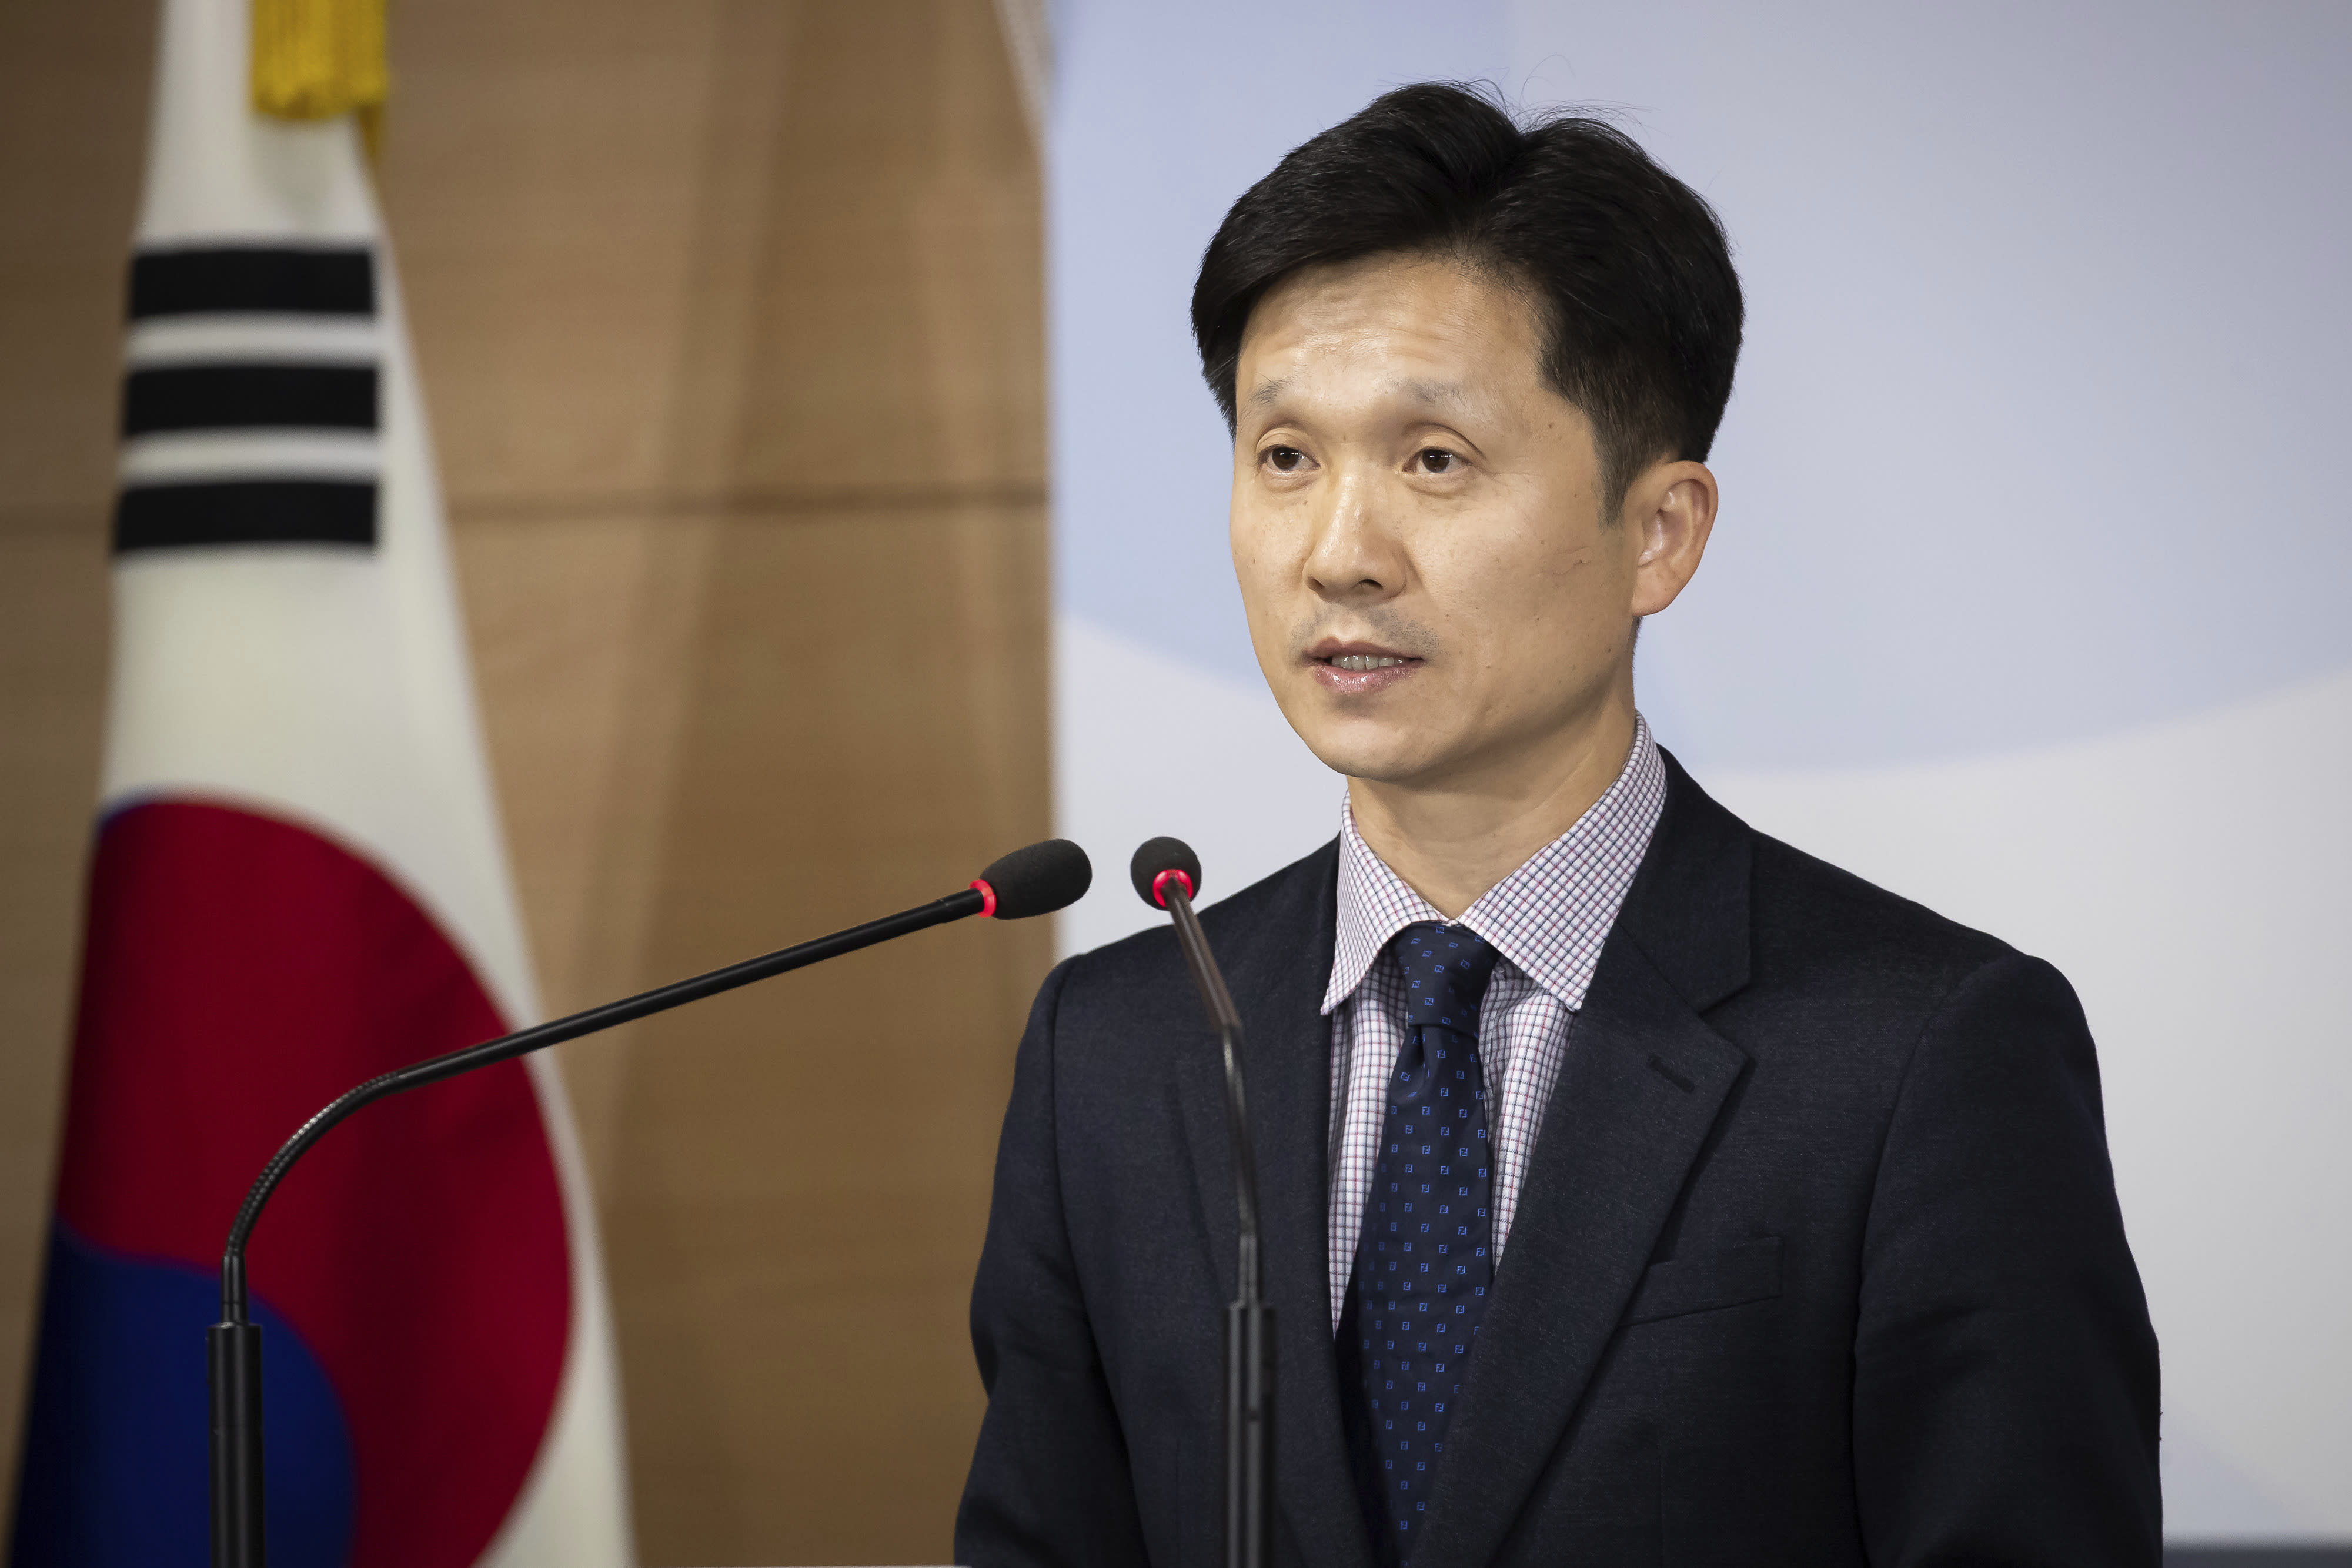 South Korean Unification Ministry spokesman Lee Sang-min briefs the media at a government complex in downtown Seoul, South Korea, Thursday, Nov. 7, 2019. South Korea says it has deported 2 North Koreans after finding they had killed 16 fellow fishermen onboard and fled to South Korea. (Kim Seung-doo/Yonhap via AP)